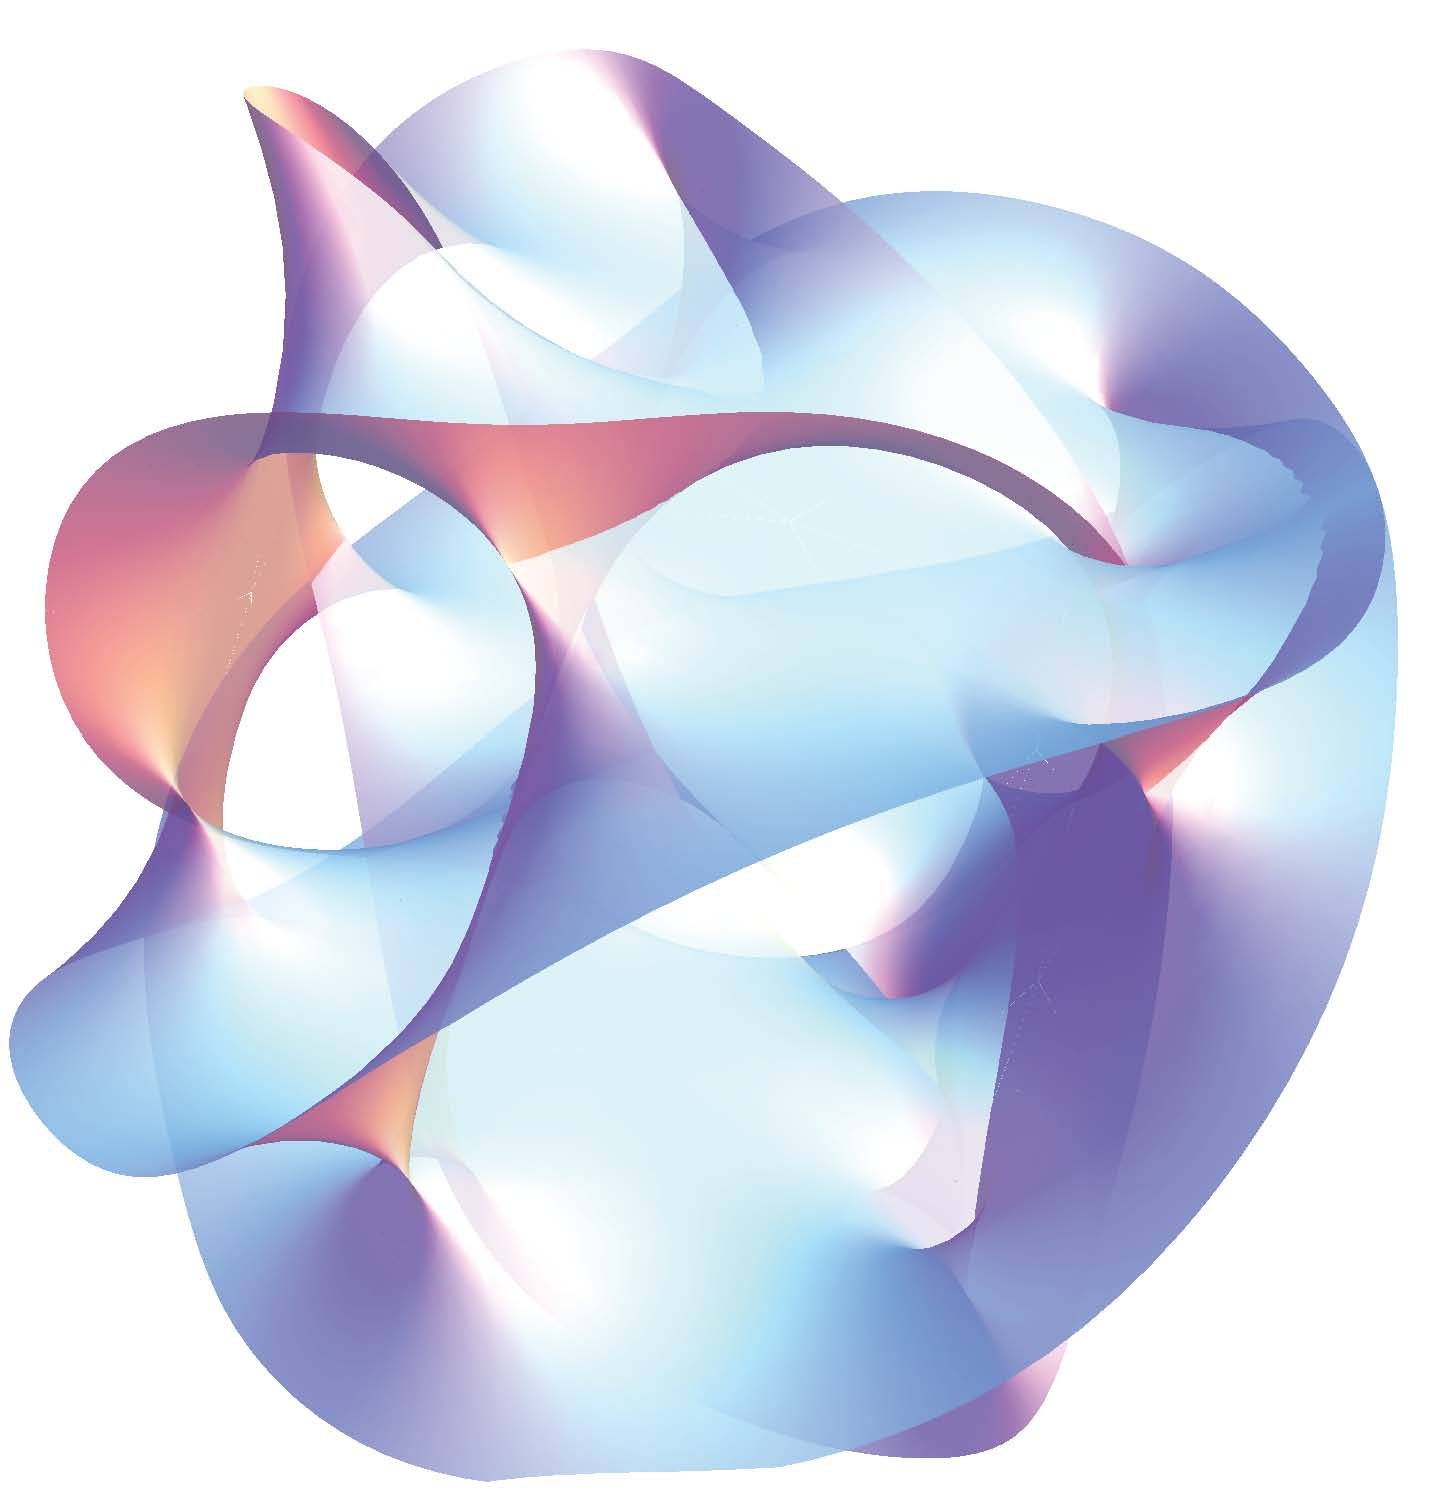 Extra dimensions must be smaller than previously thought.